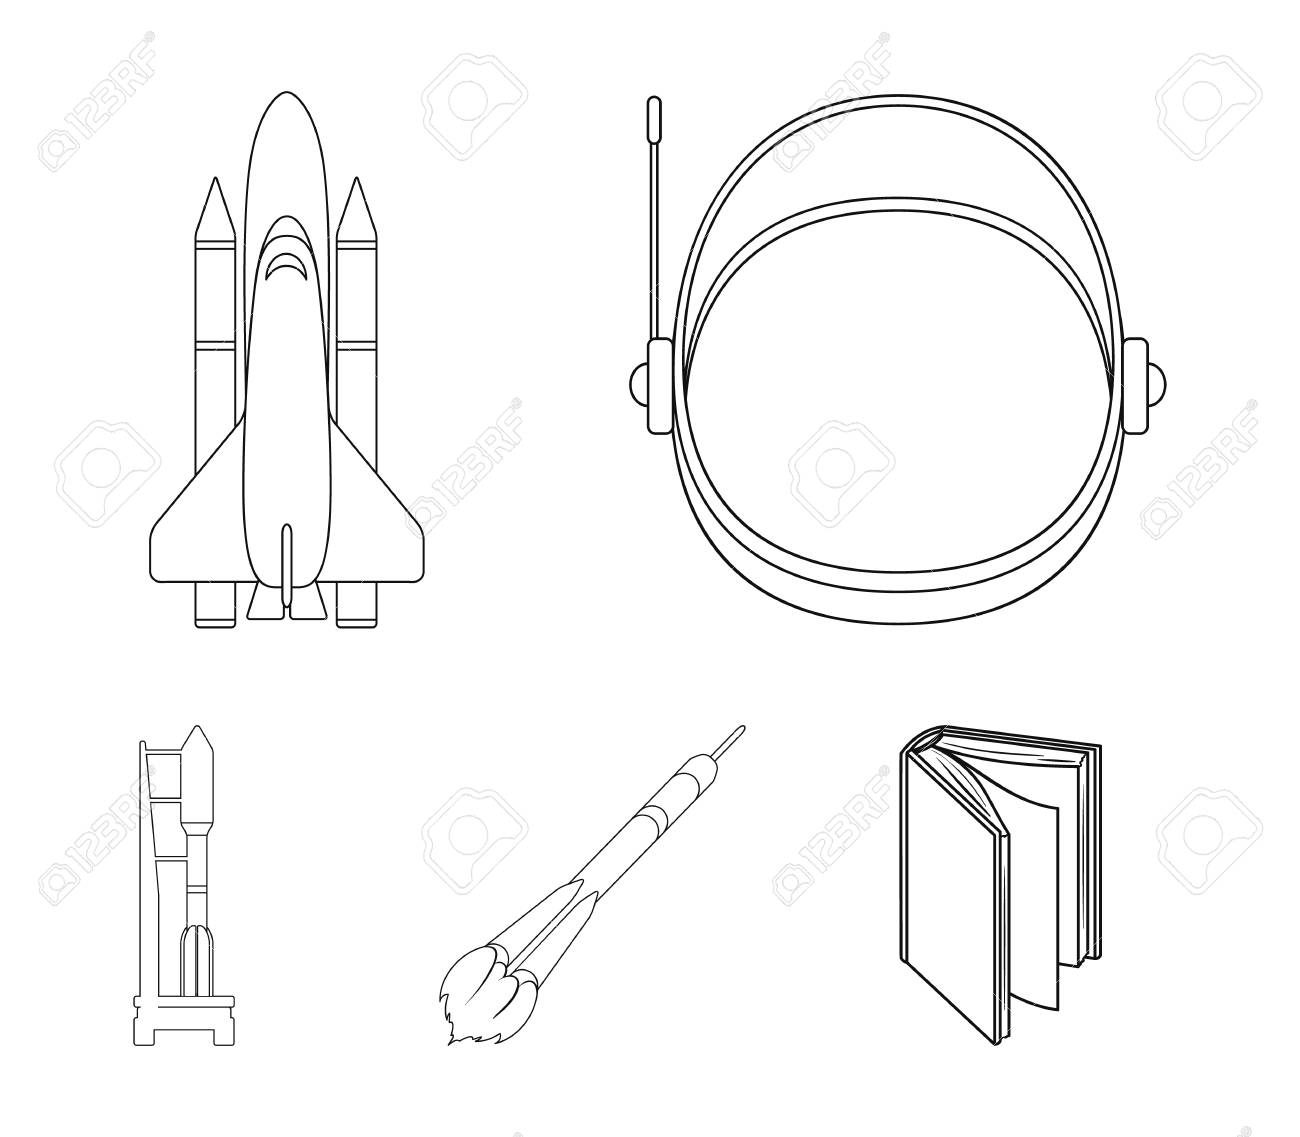 94810111 a spaceship in space a cargo shuttle a launch pad an astronaut s helmet space technology set collect a spaceship in space, a cargo shuttle, a launch pad, an astronaut's